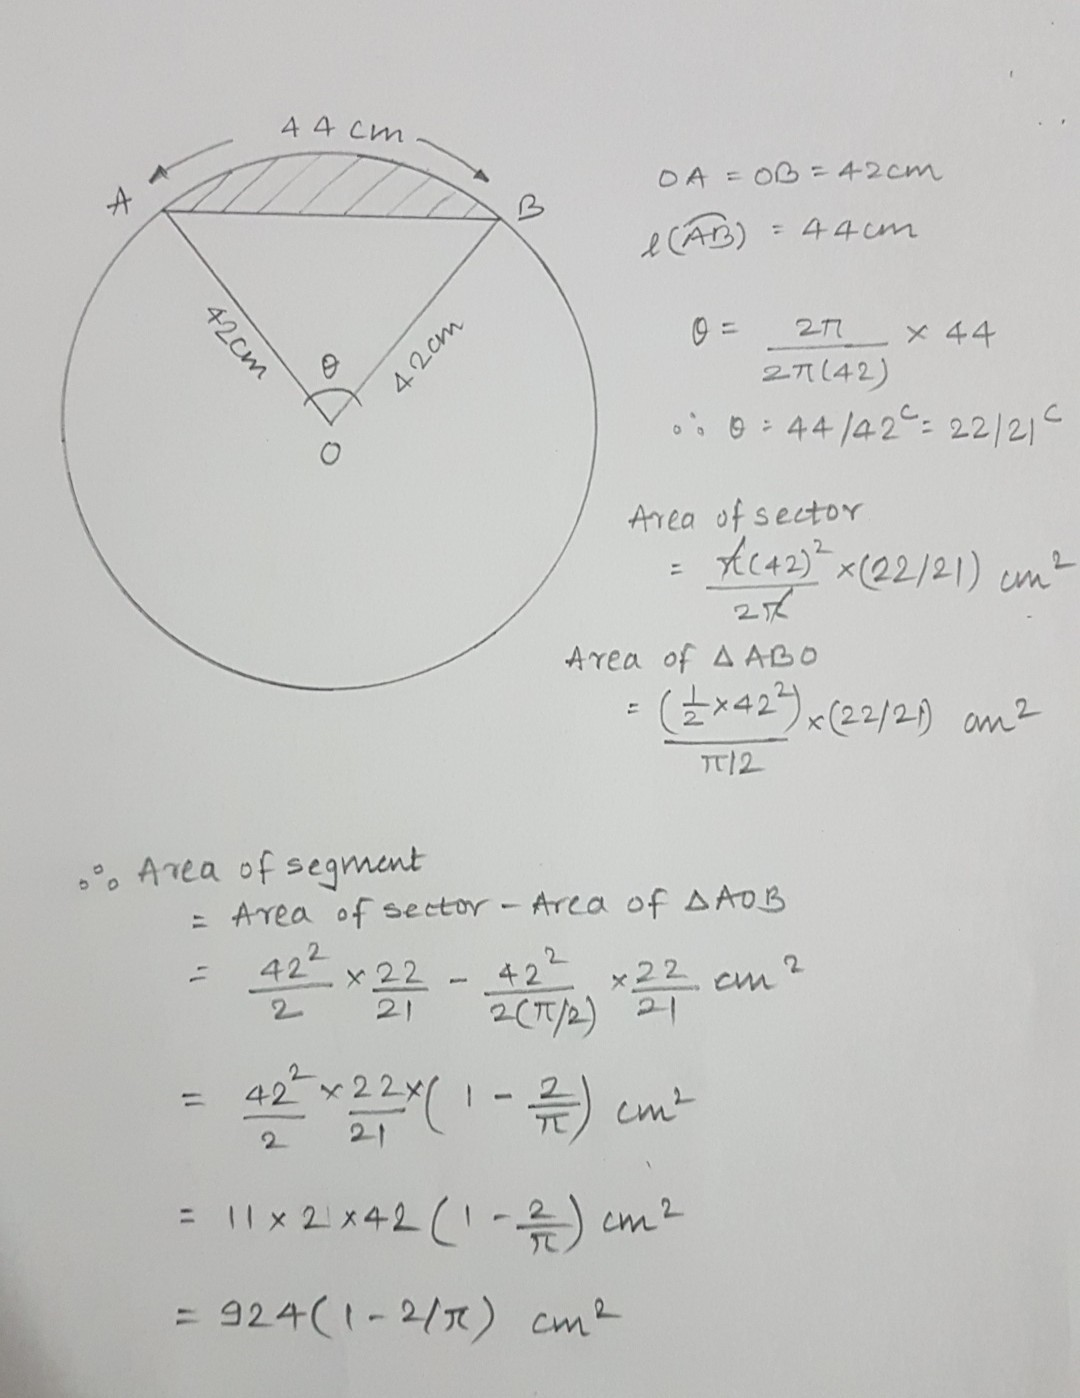 Find The Area Of The Minor Segment Of A Circle Of Radius